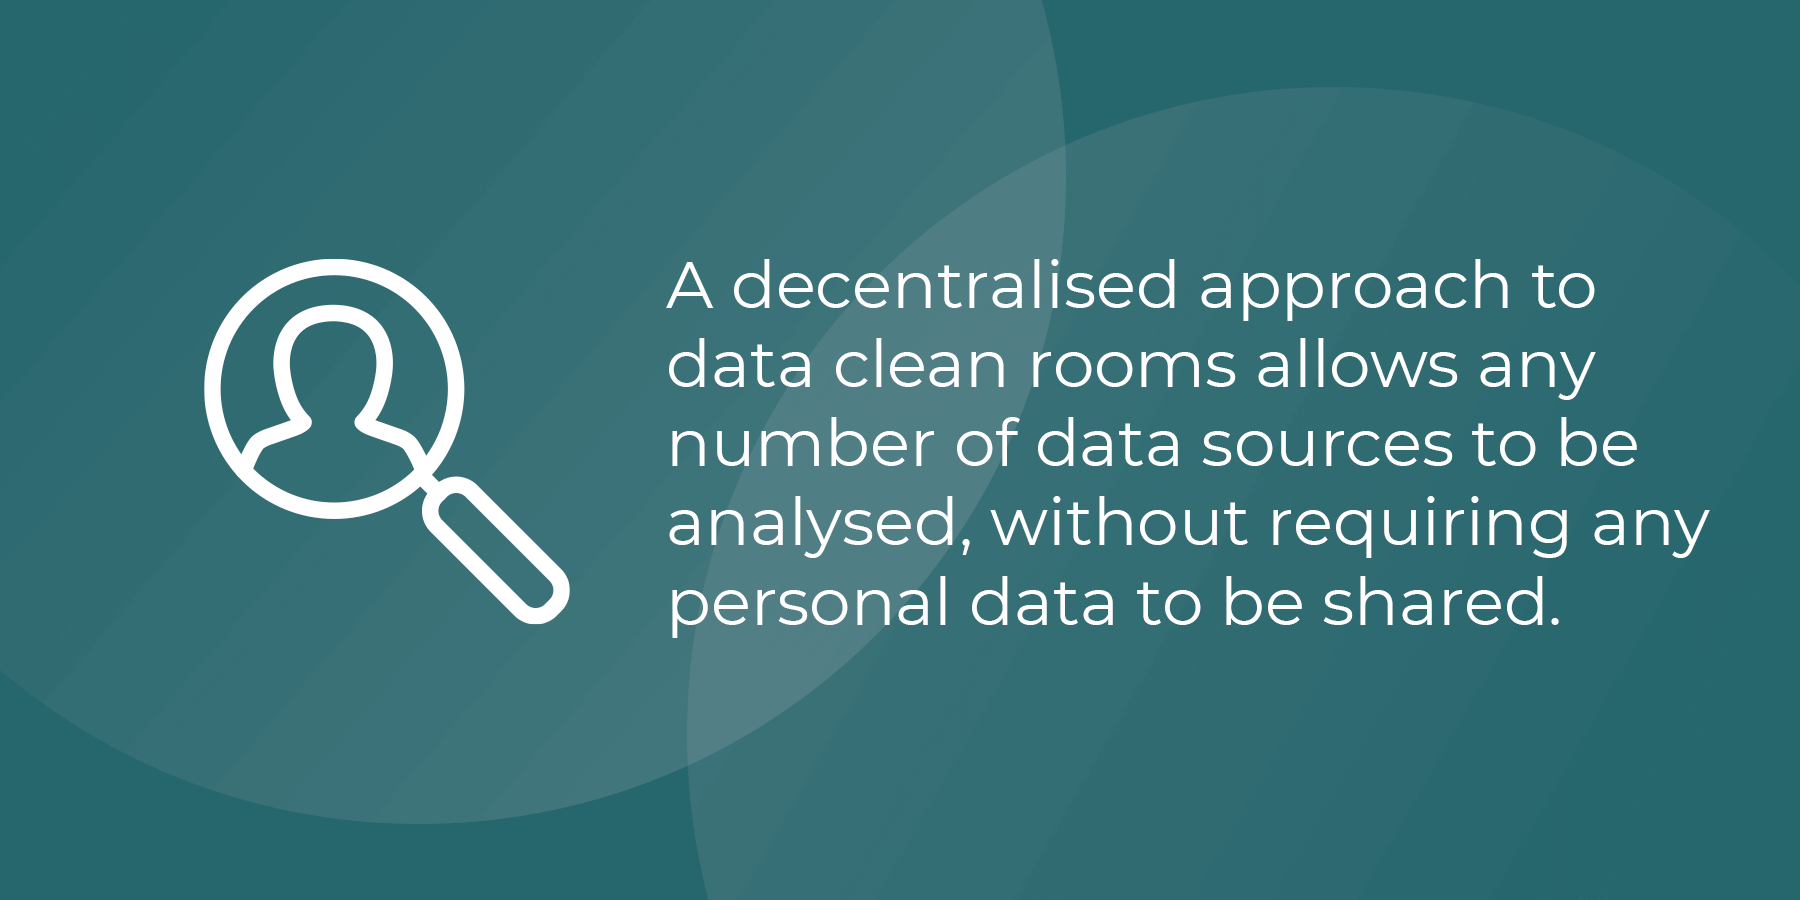 A decentralised approach to data clean rooms allows any number of data sources to be analyses, without requiring any personal data to be shared.